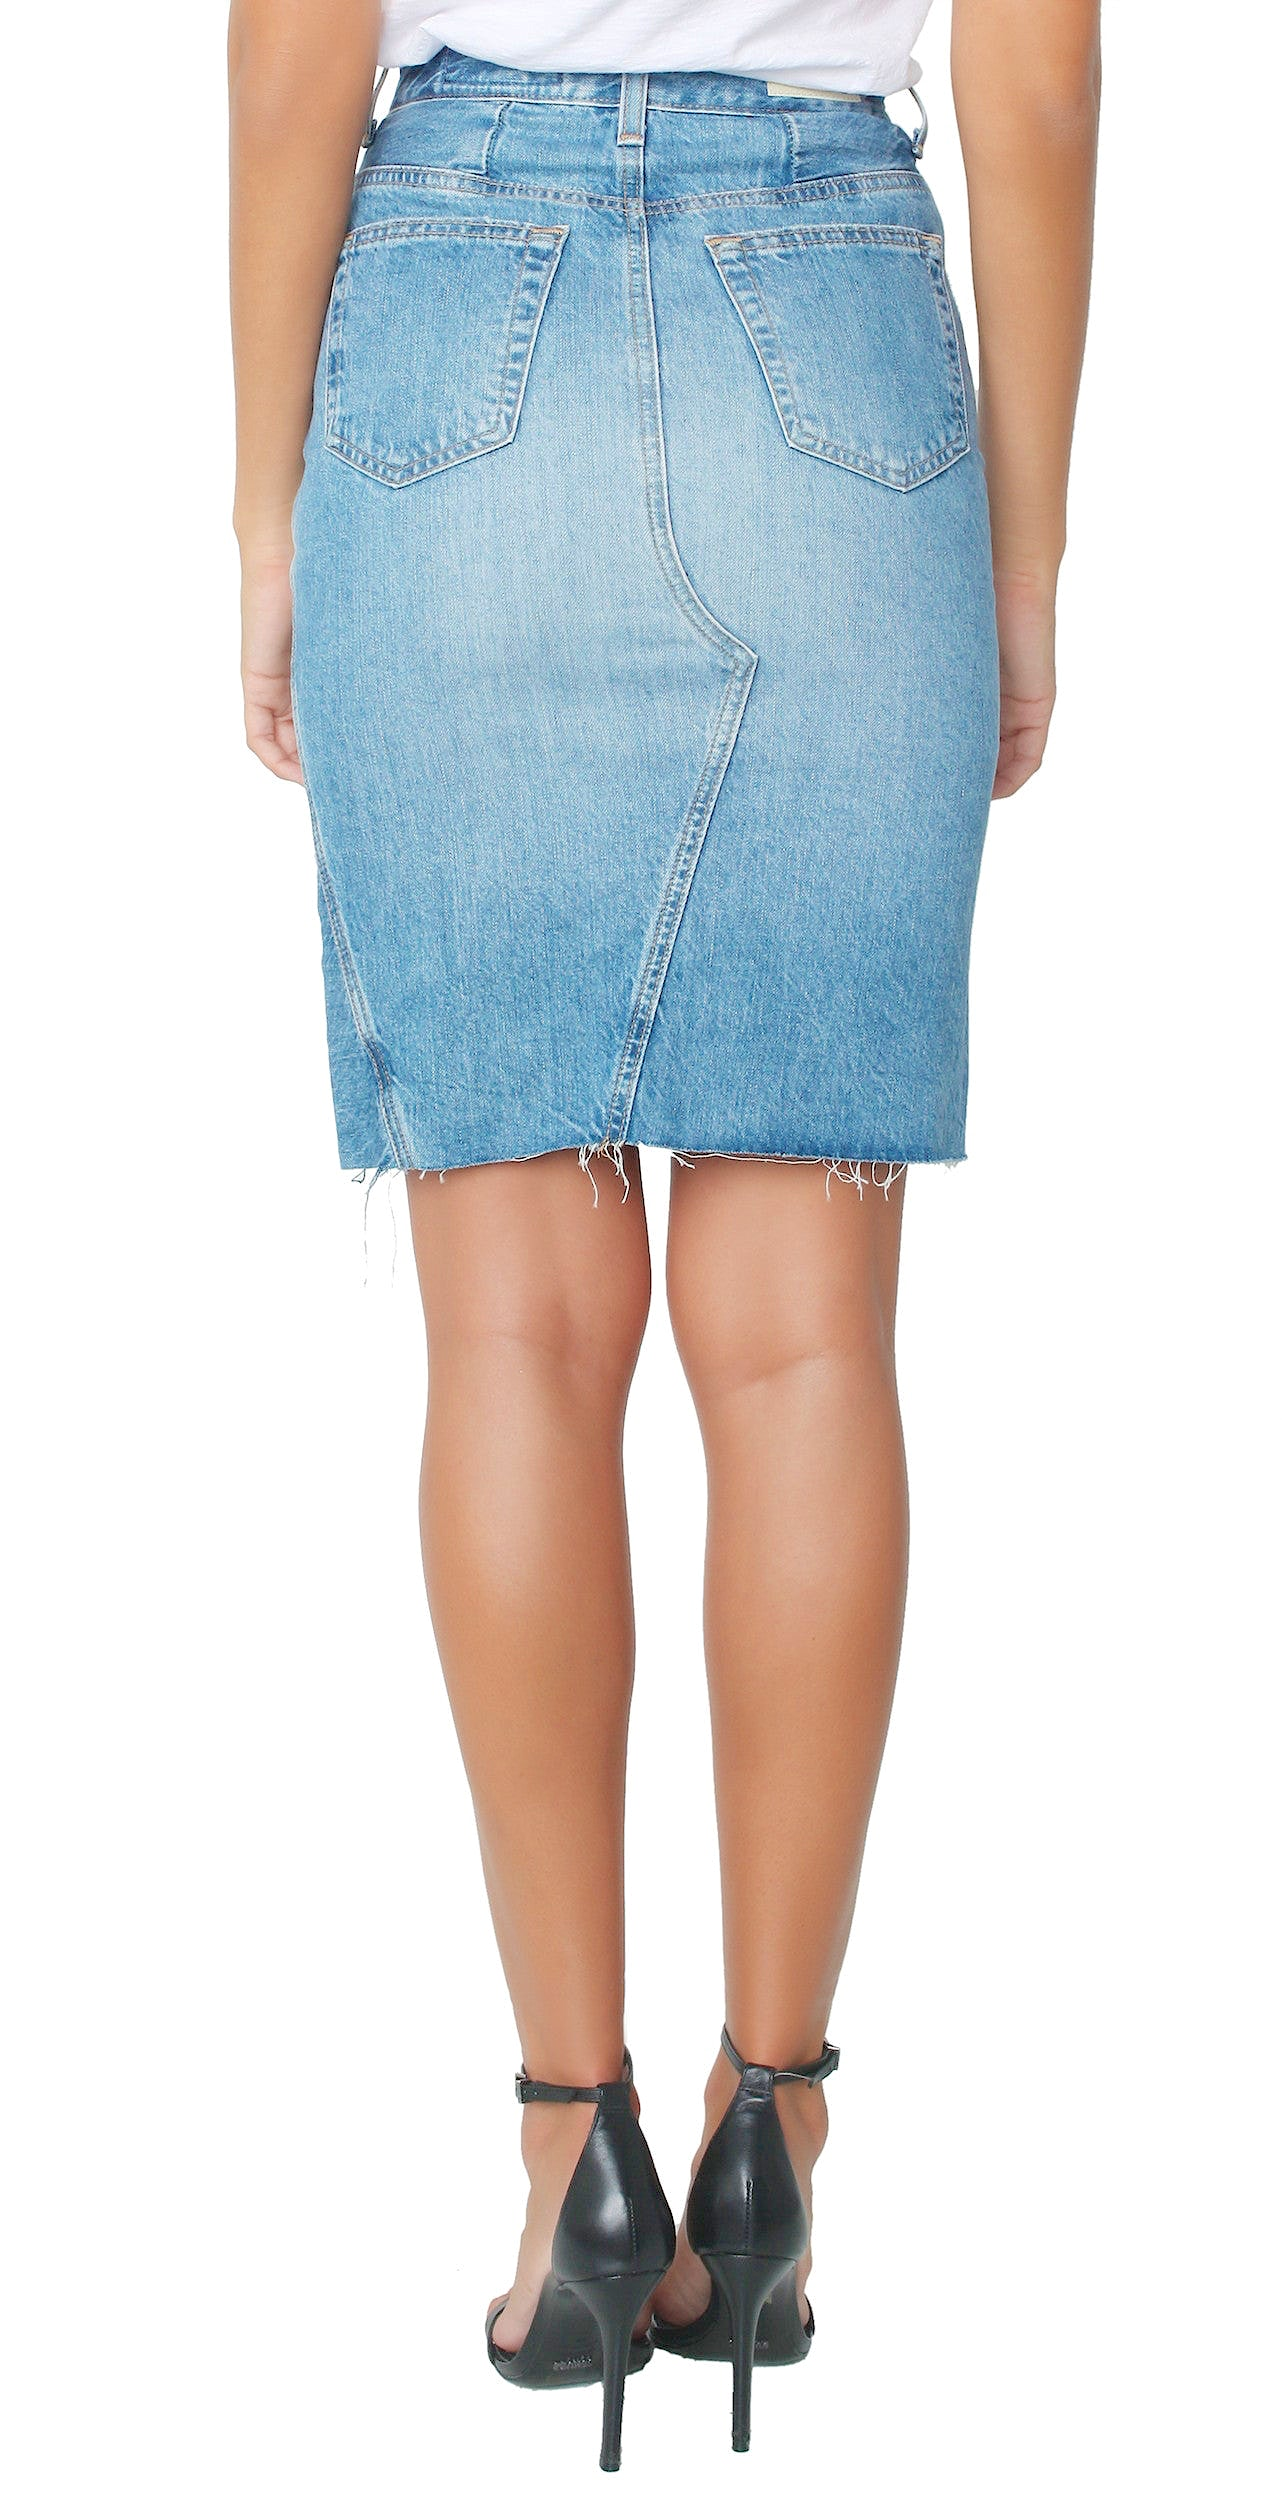 d11ca41e87 AG Jeans AG Jeans. Bottoms, Skirts/Shorts. The Emery High Waisted ...